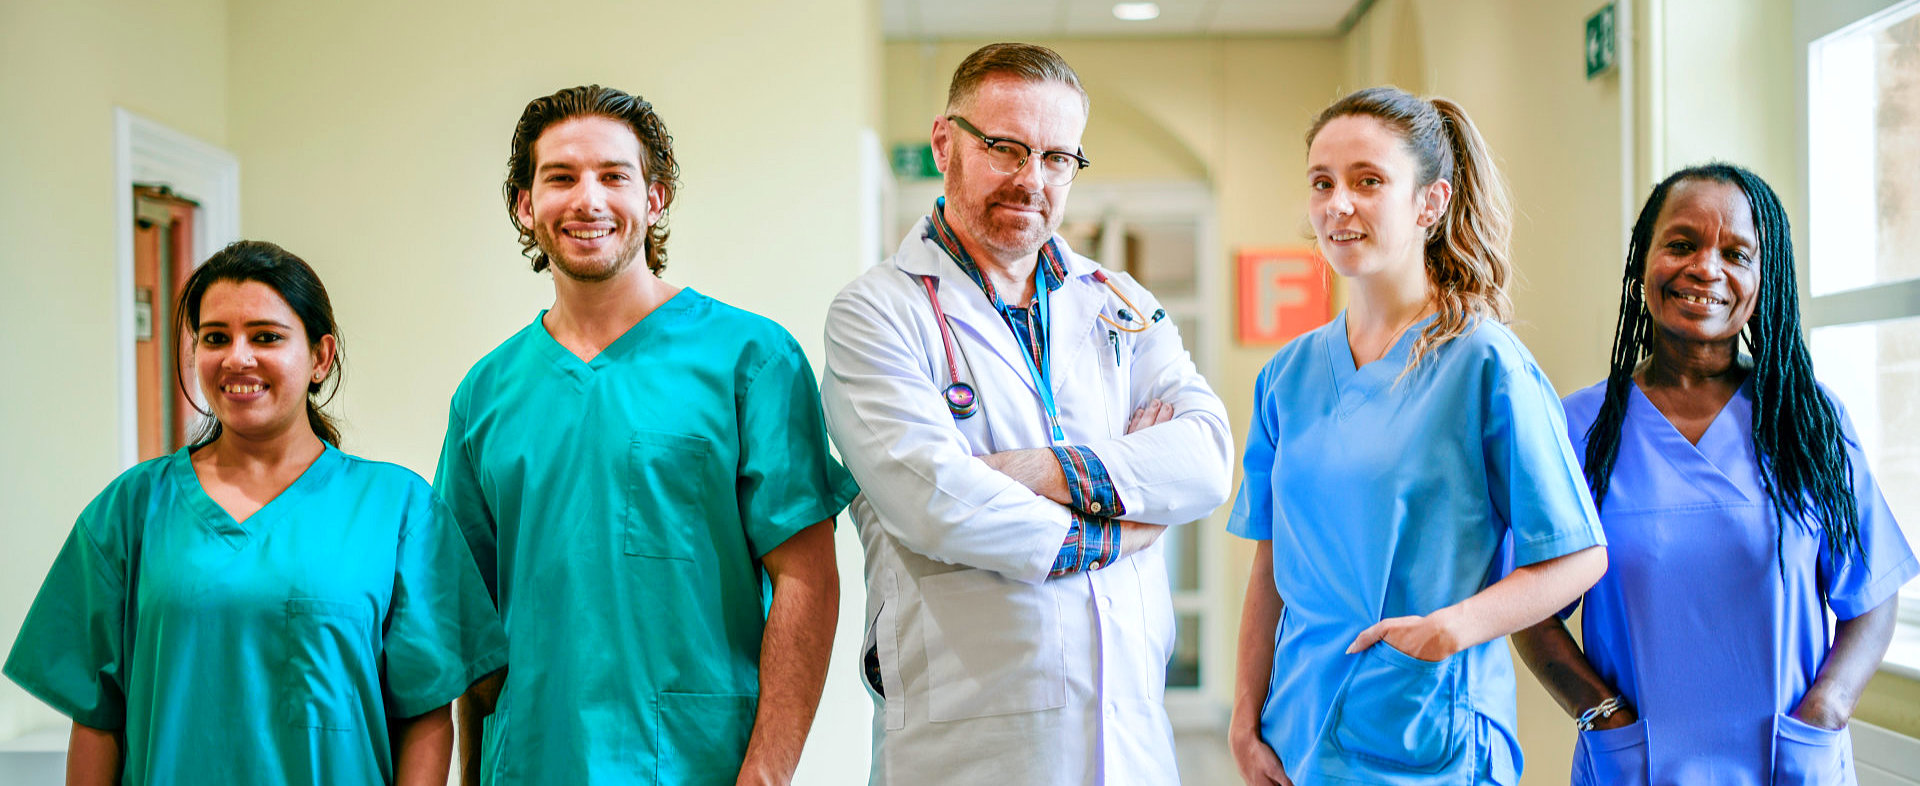 doctor and four nurses